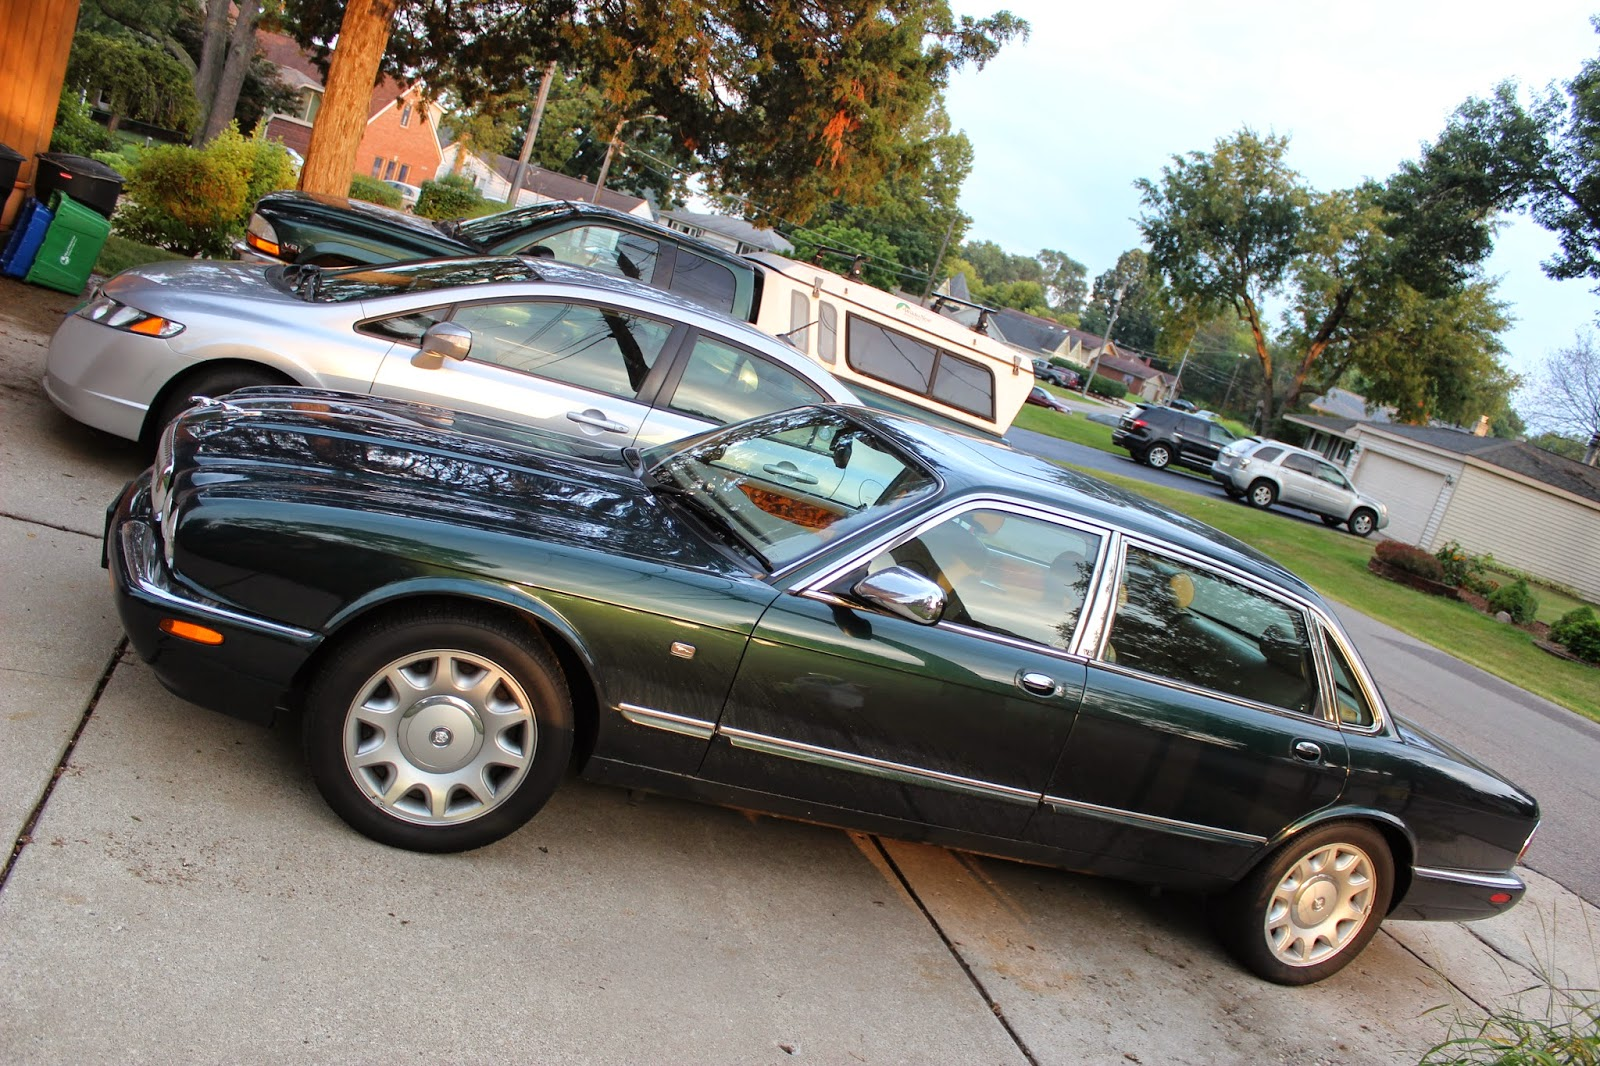 i reckoned i d share a few photos of the newest member of our own automotive fleet a 1999 jaguar xj8 vanden plas supercharged saloon